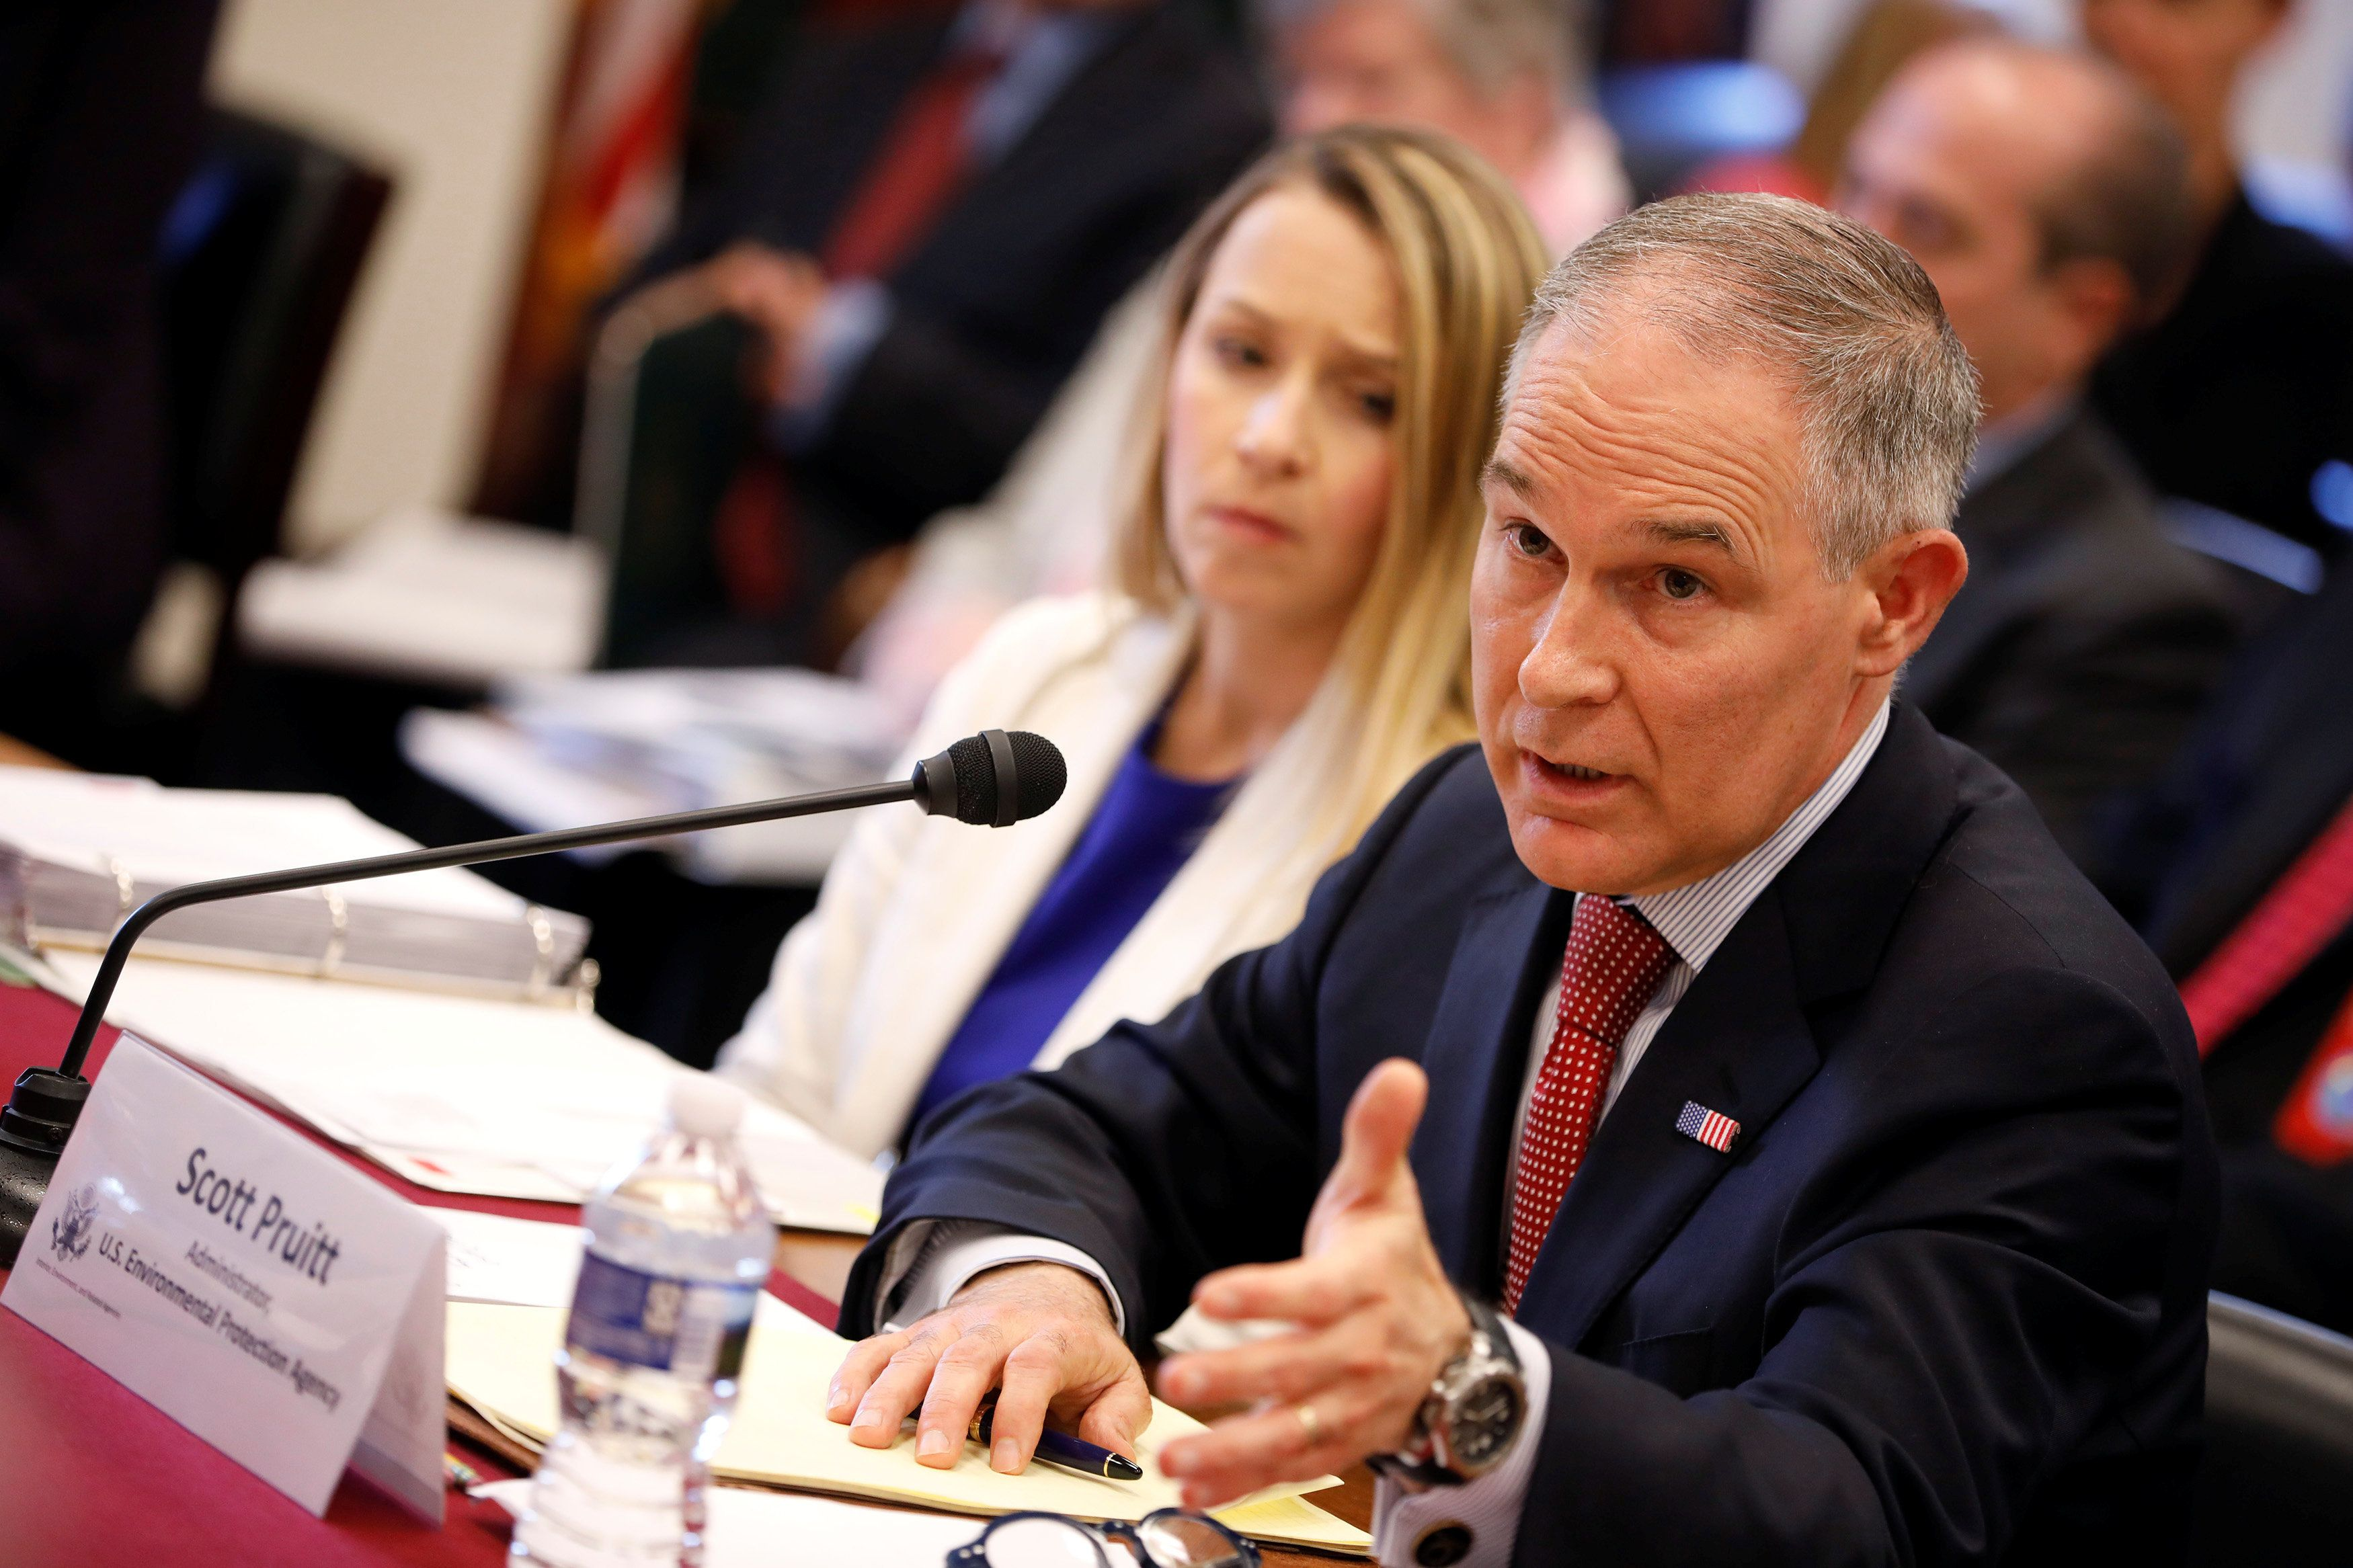 EPA Administrator Scott Pruitt testifies before the House Appropriations Committee Subcommittee on Interior, Environment, and Related Agencies Subcommittee on Capitol Hill in Washington, U.S., April 26, 2018. REUTERS/Aaron P. Bernstein